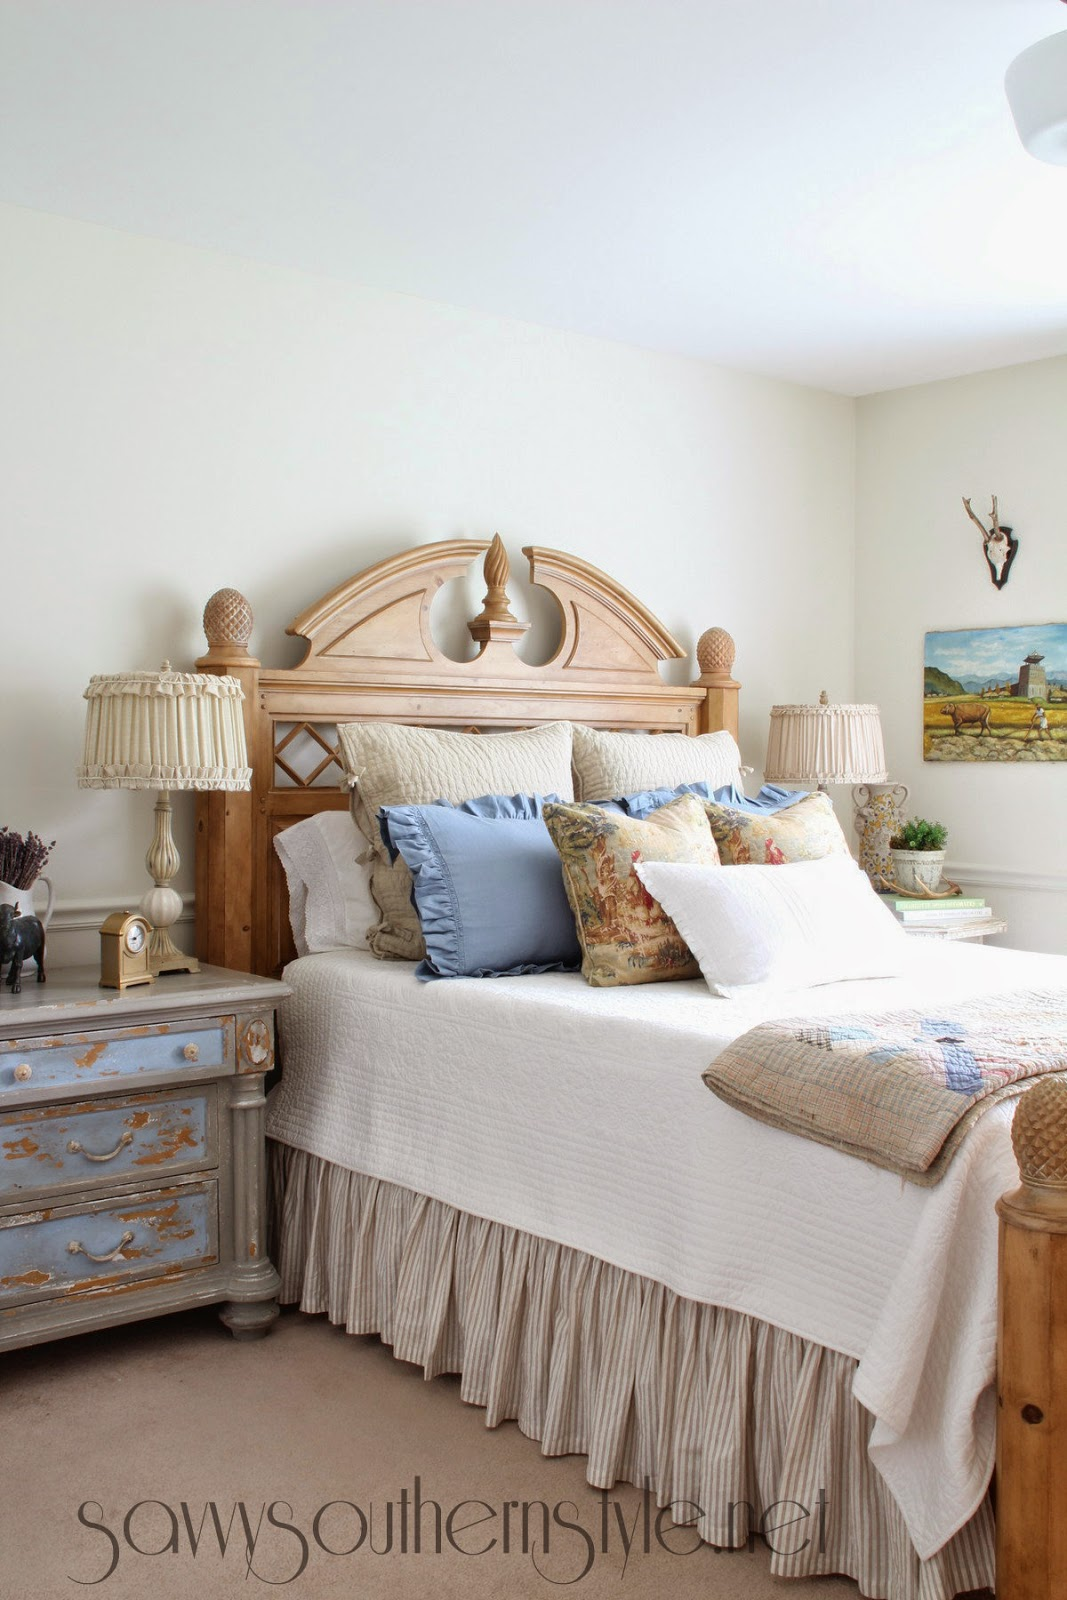 Savvy southern style french country style guest room reveal for Country french rooms